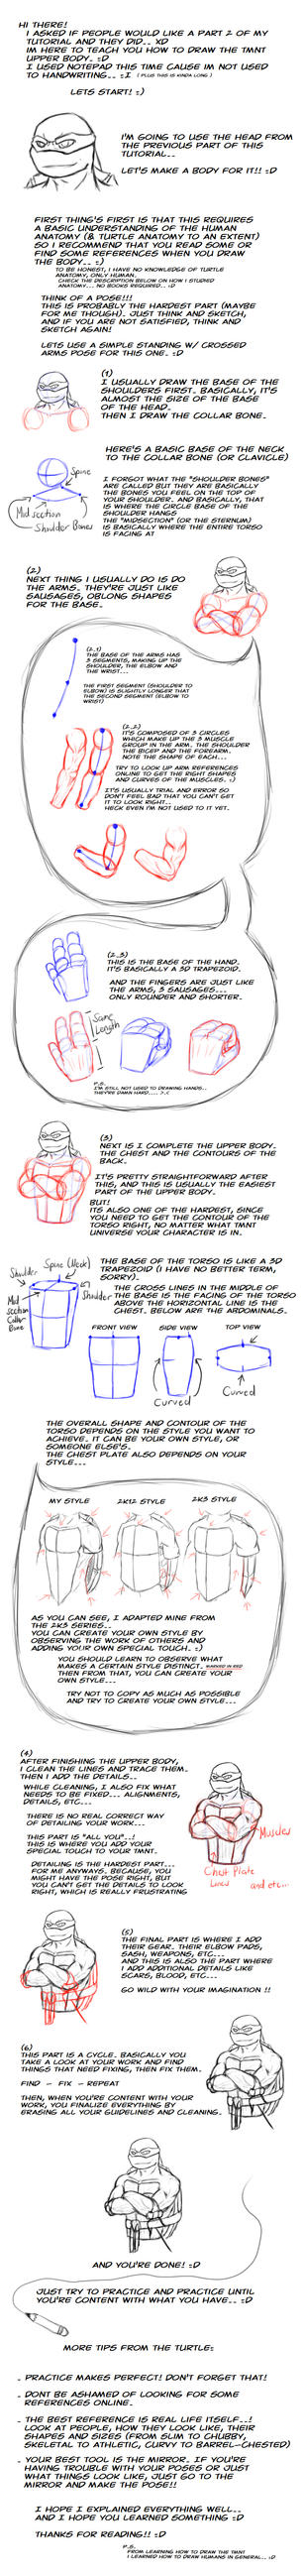 http://th07.deviantart.net/fs70/PRE/f/2013/231/a/6/tmnt___how_to_draw__upper_body_by_xenim666-d6itydv.jpg